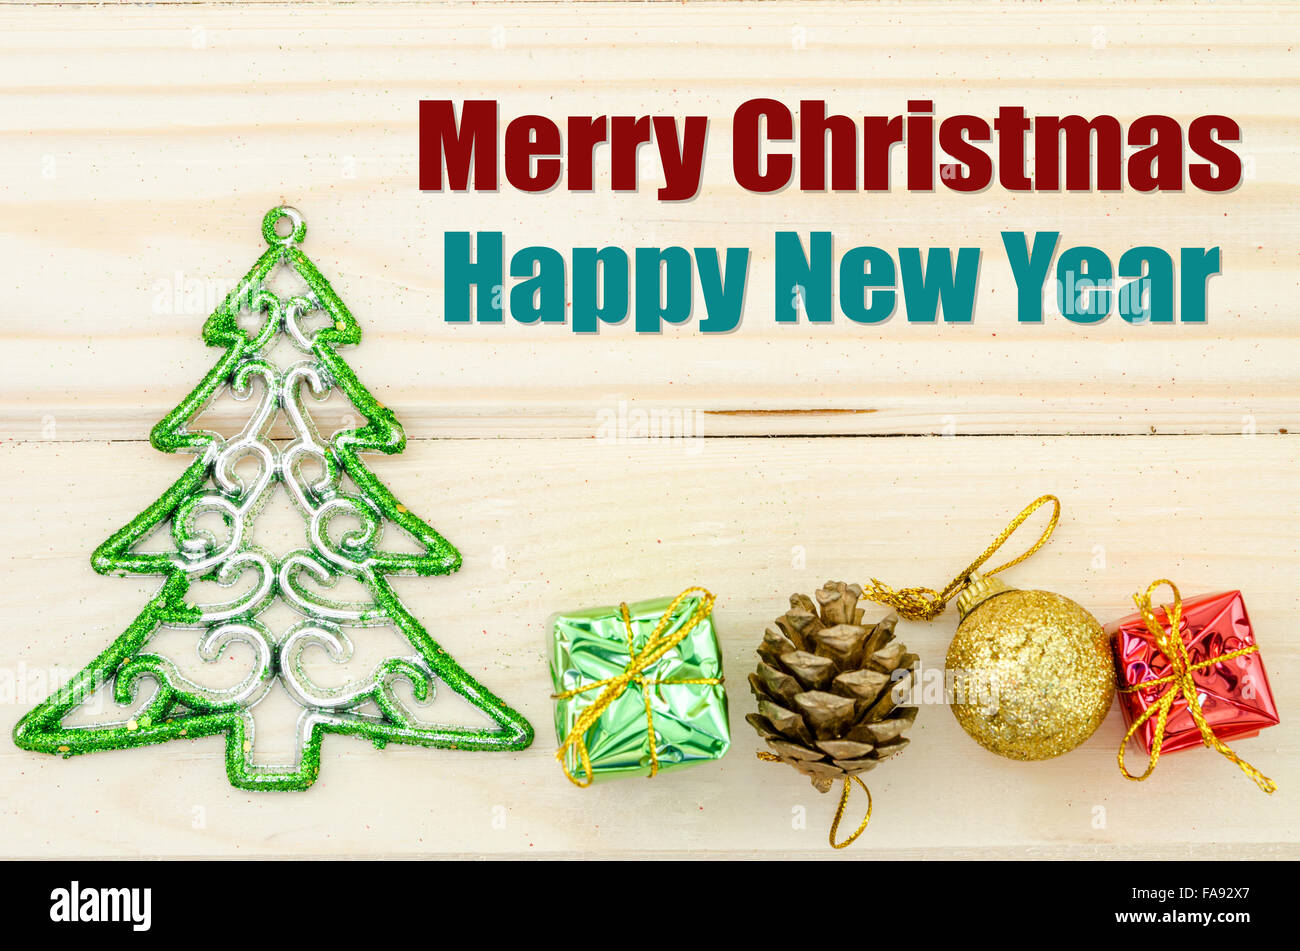 Merry Christmas and happy new year wording with christmas decorations on wooden background. - Stock Image